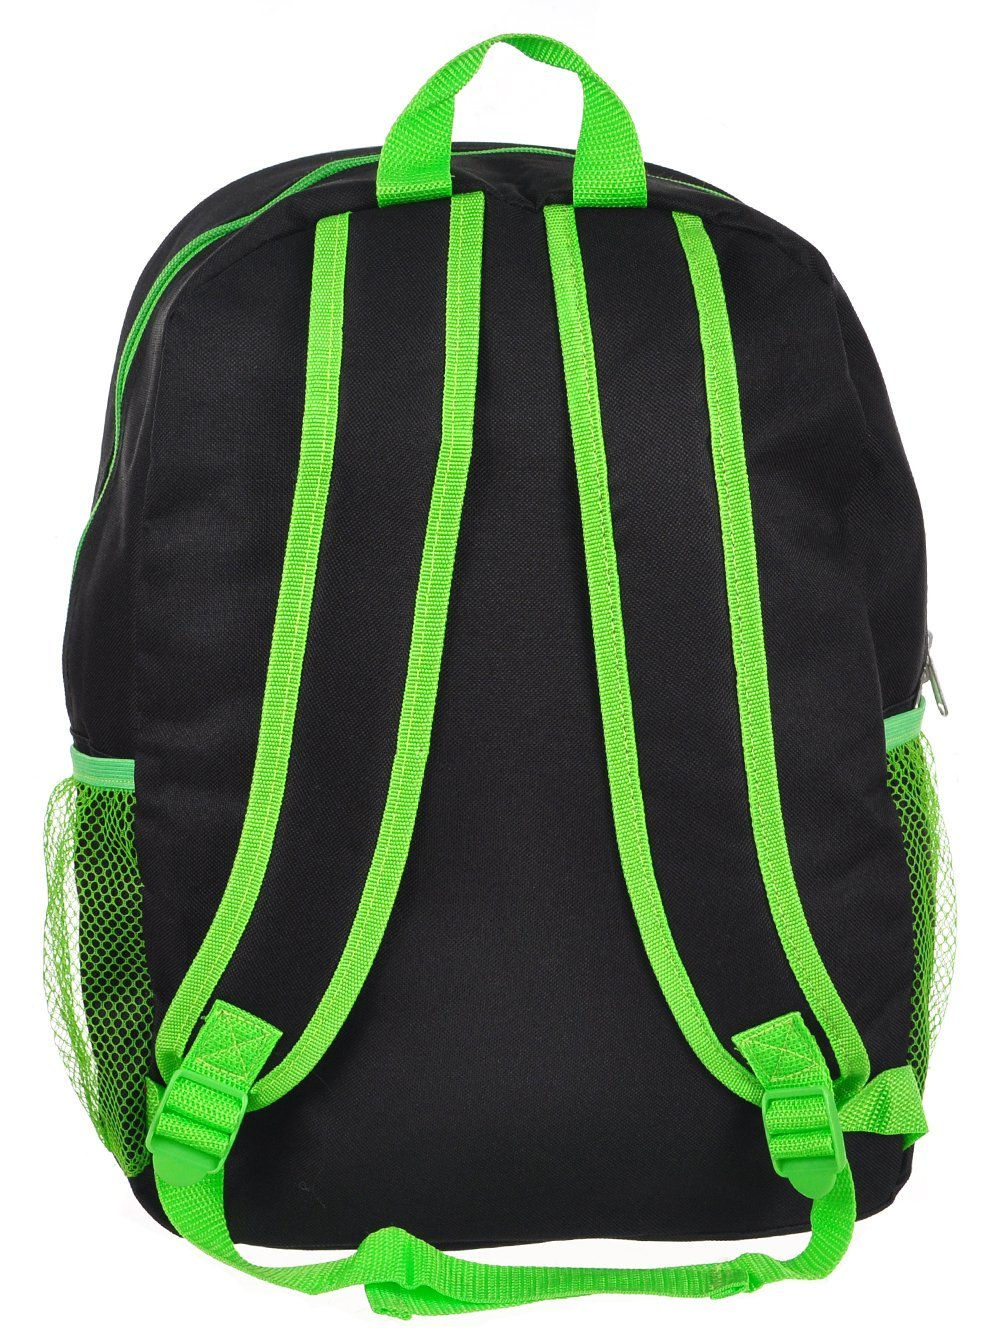 TMNT Ninja Turtles 16'' Backpack With Detachable Matching Lunch Box by Group Ruz (Image #3)